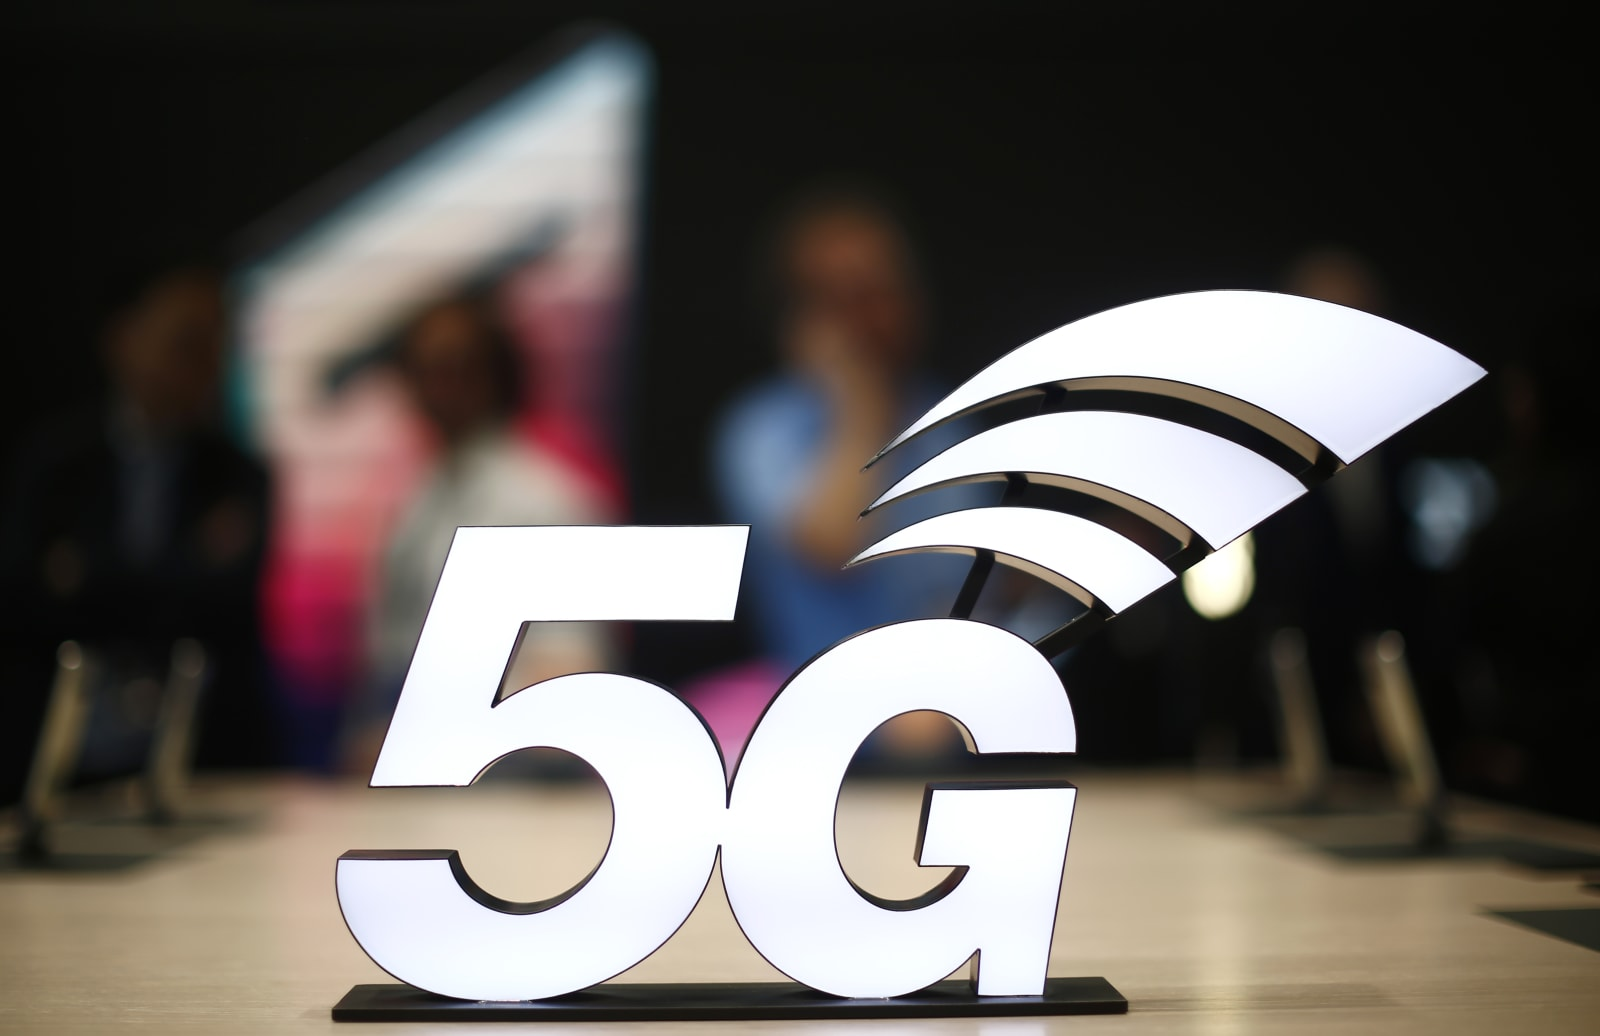 FCC chairman wants to open mid-band airwaves for 5G